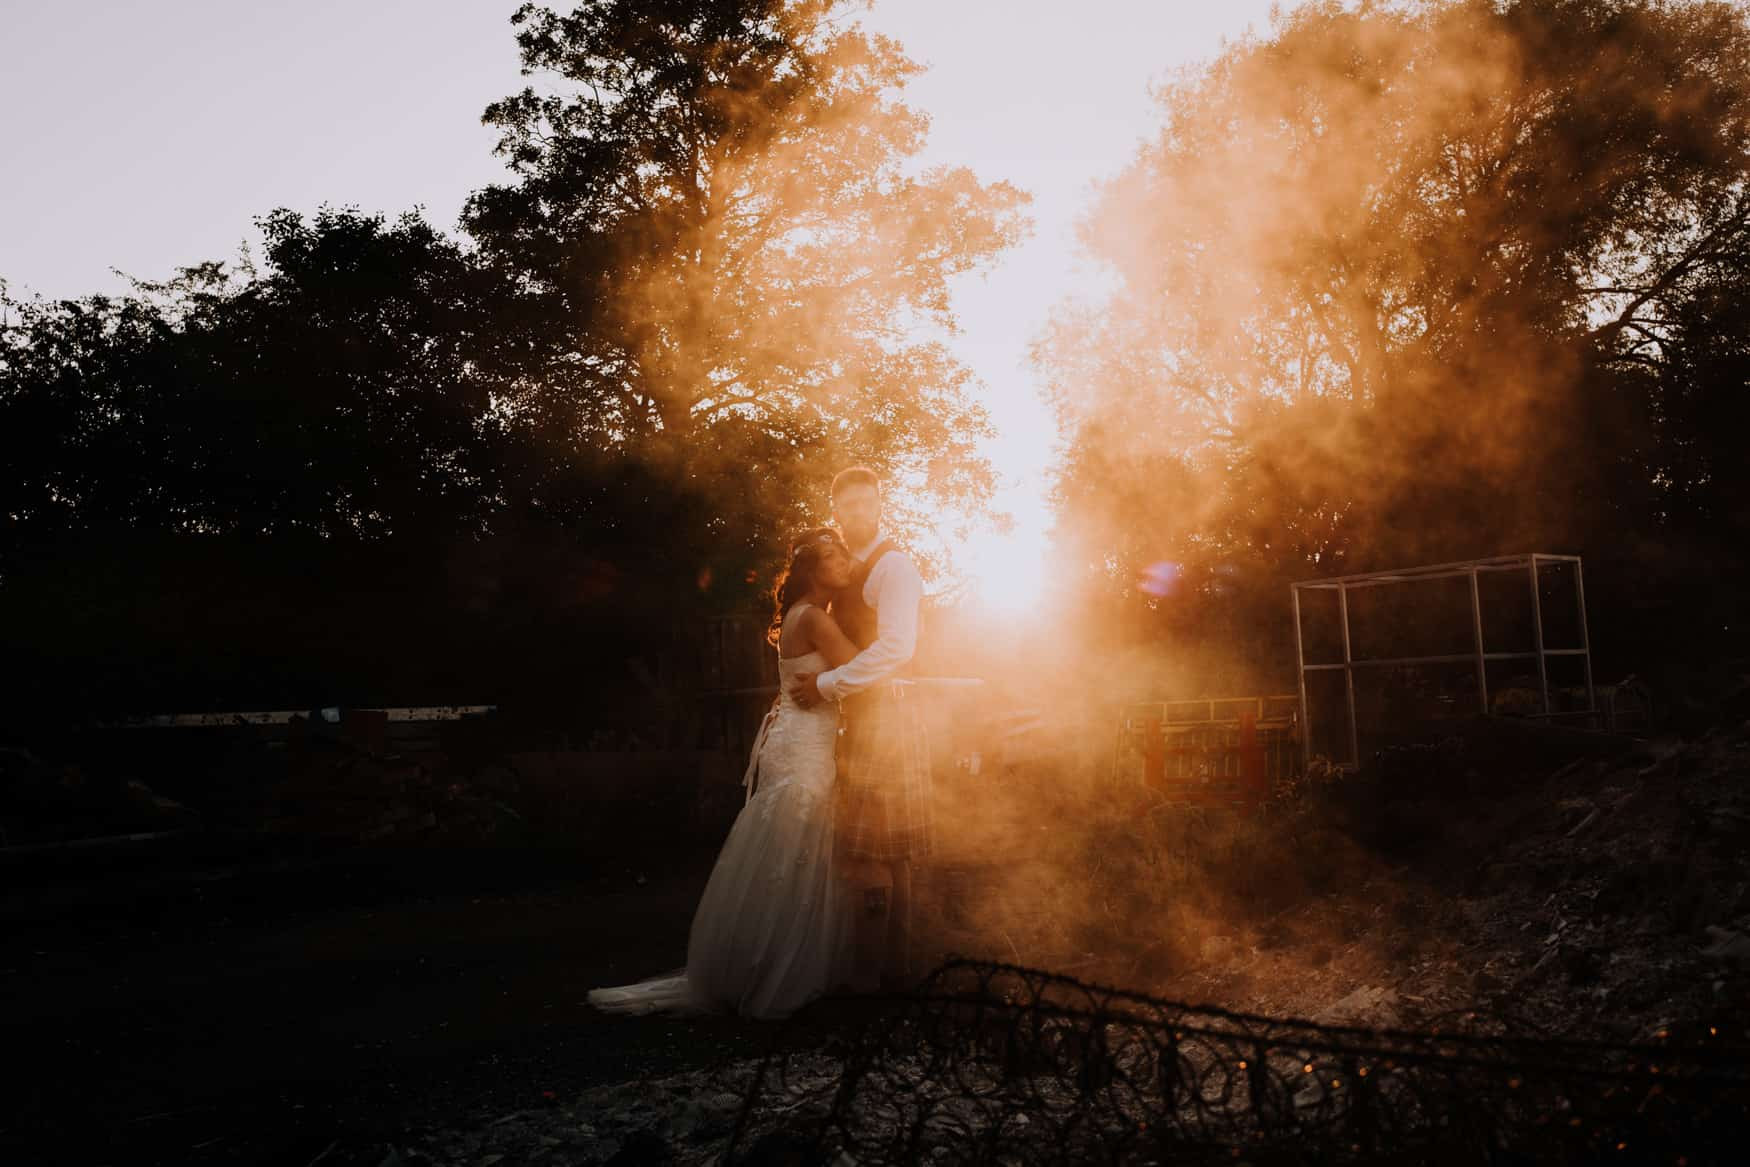 Bride and groom sunset with bonfire shot